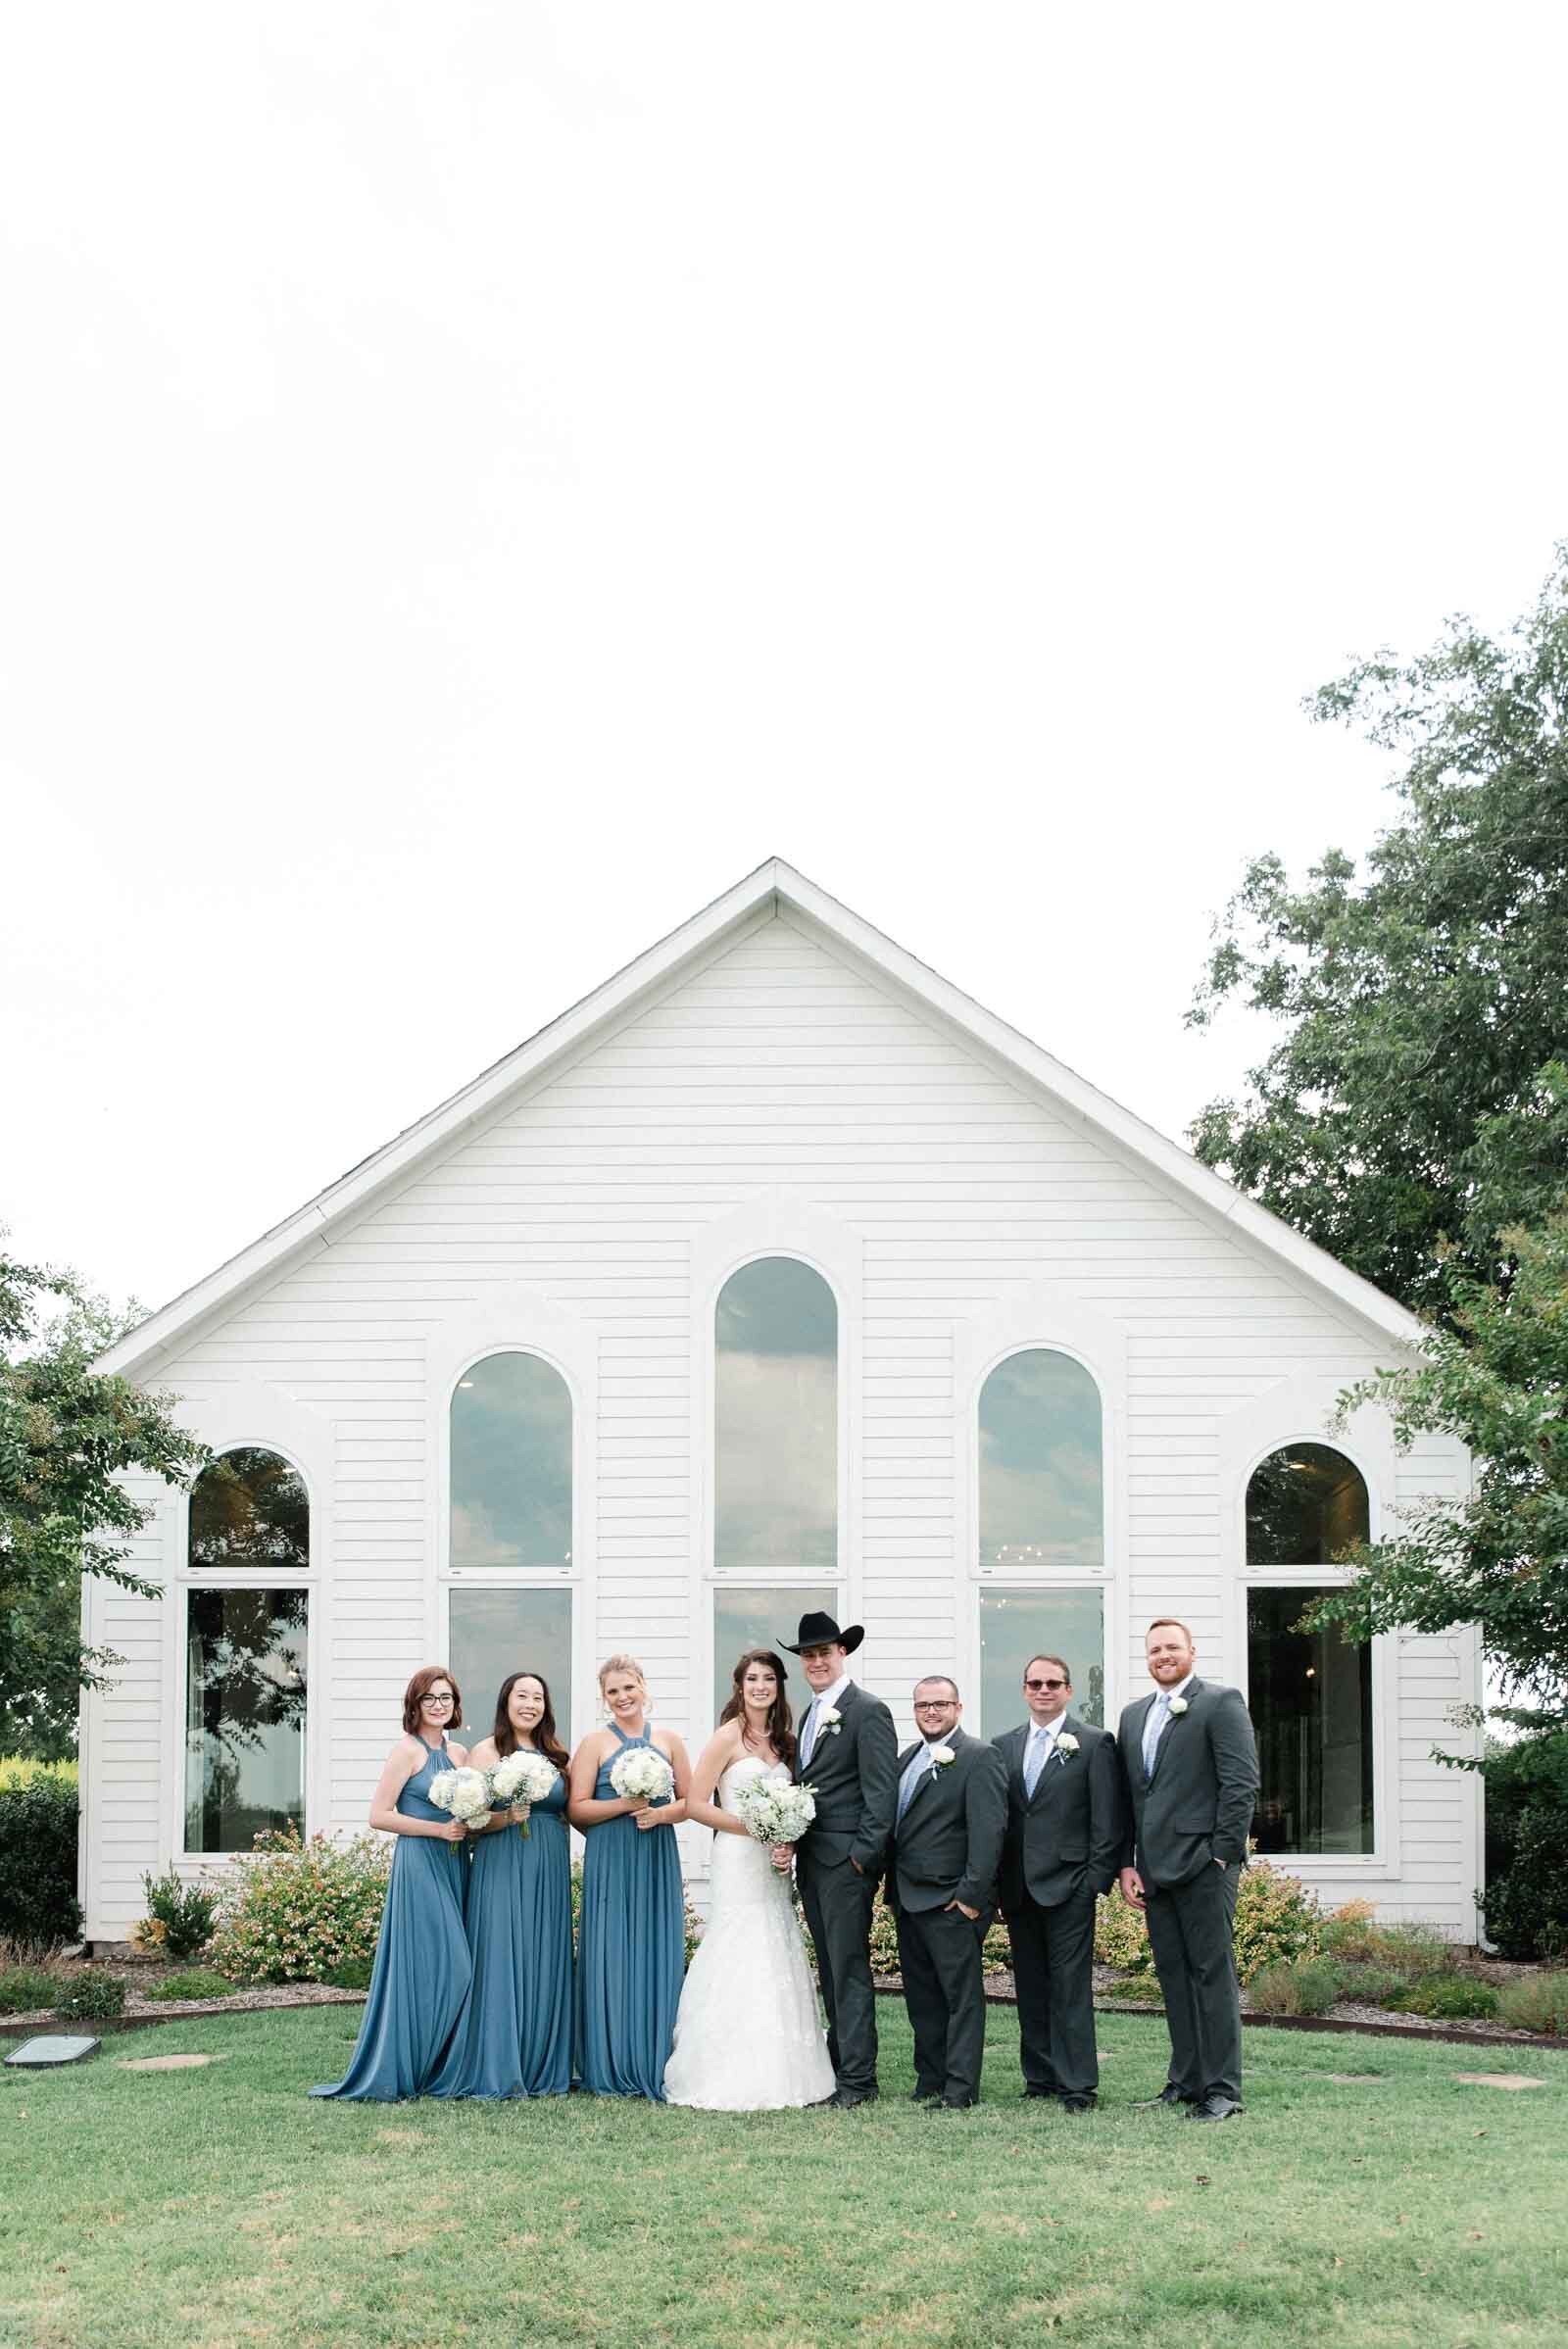 JenSymes_Emilee-Hoyt-Wedding-978.jpg